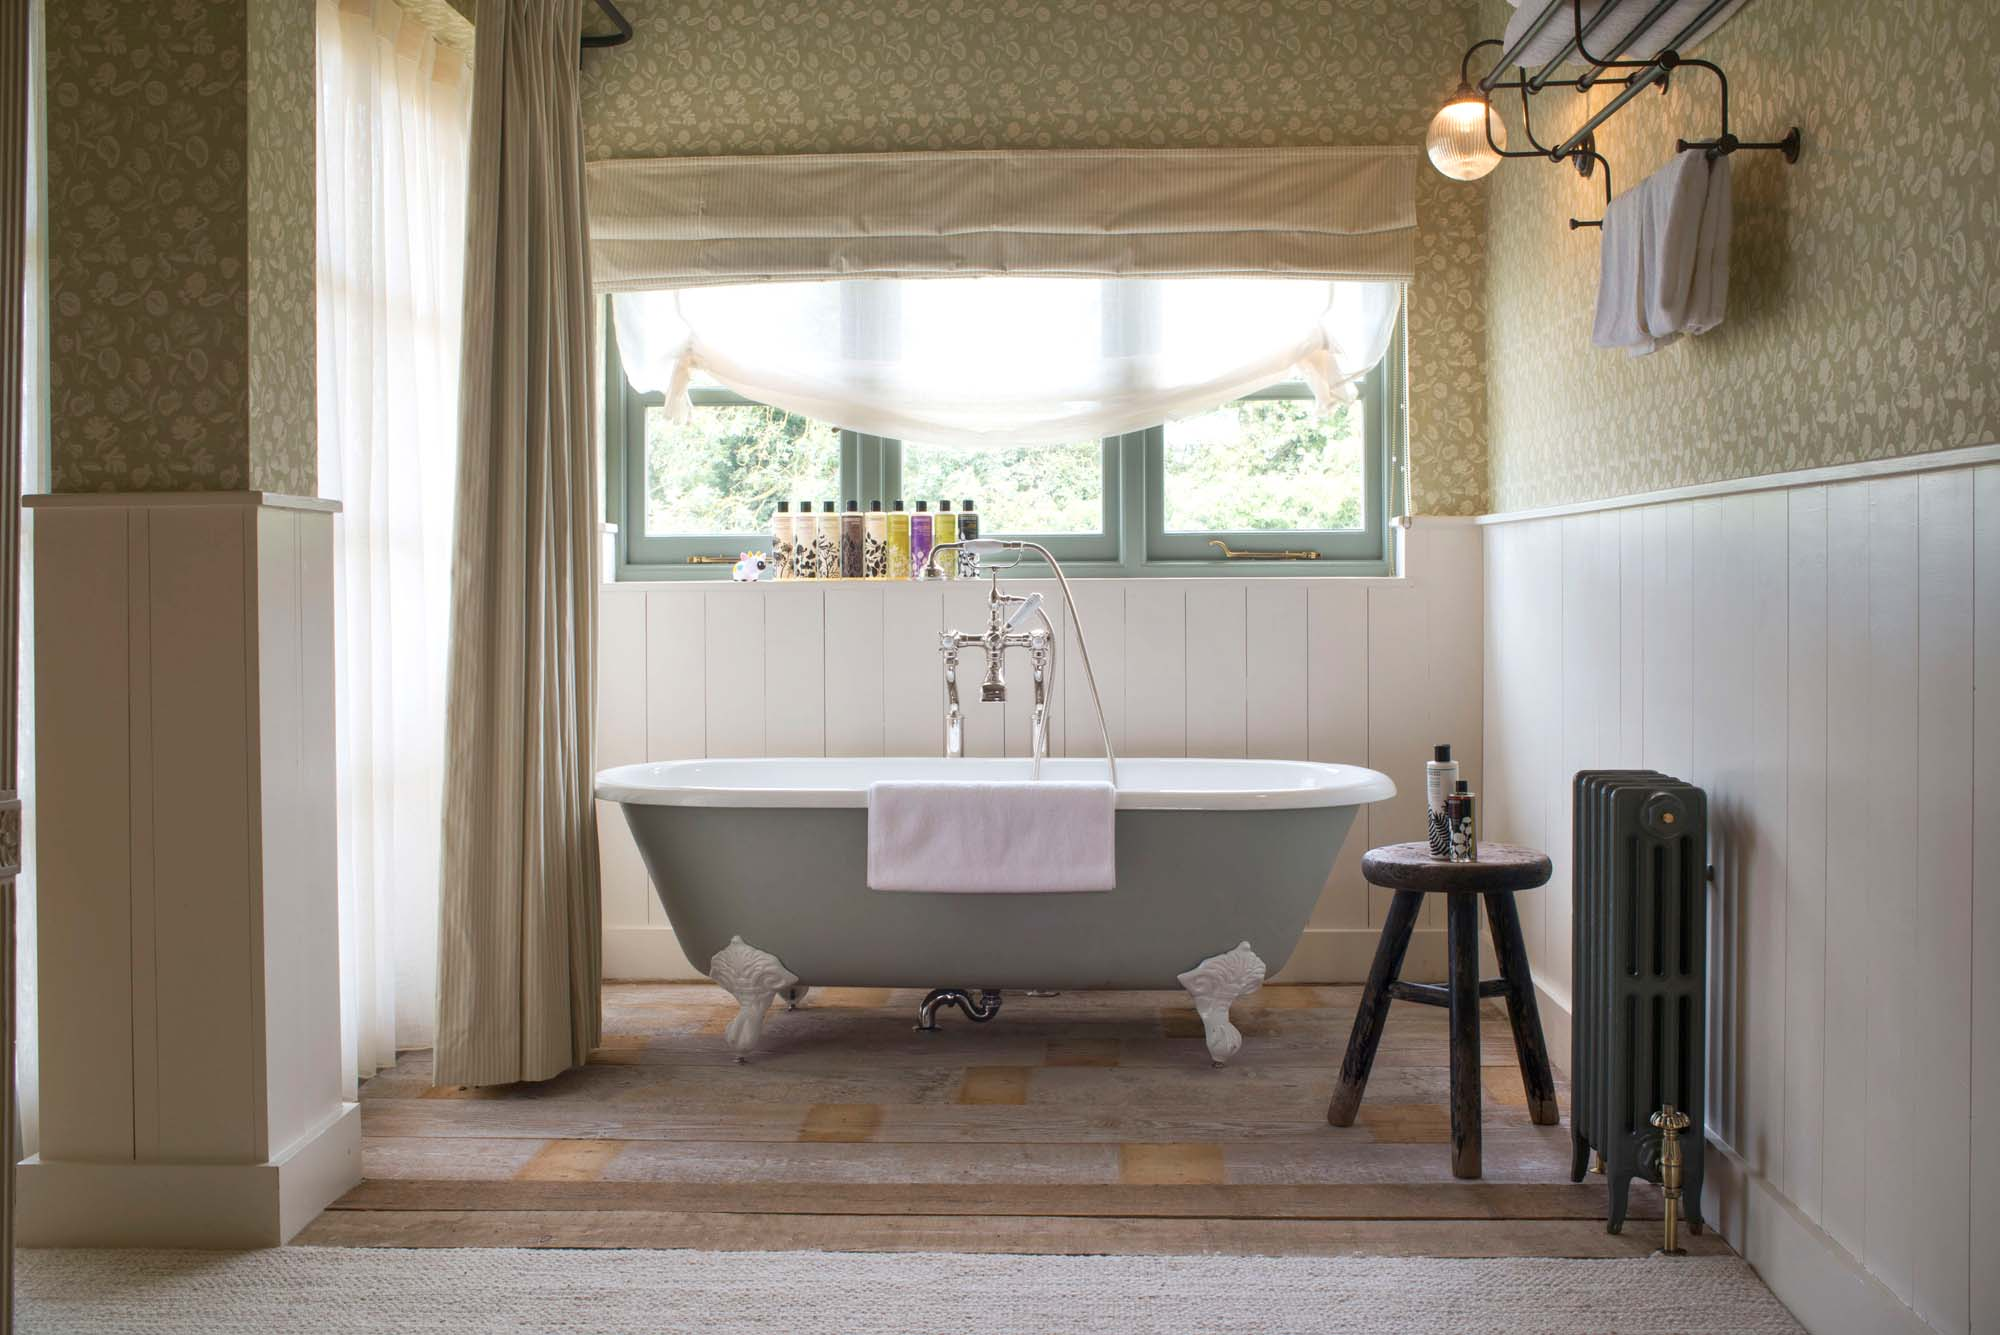 Cowshed products in Soho Farmhouse